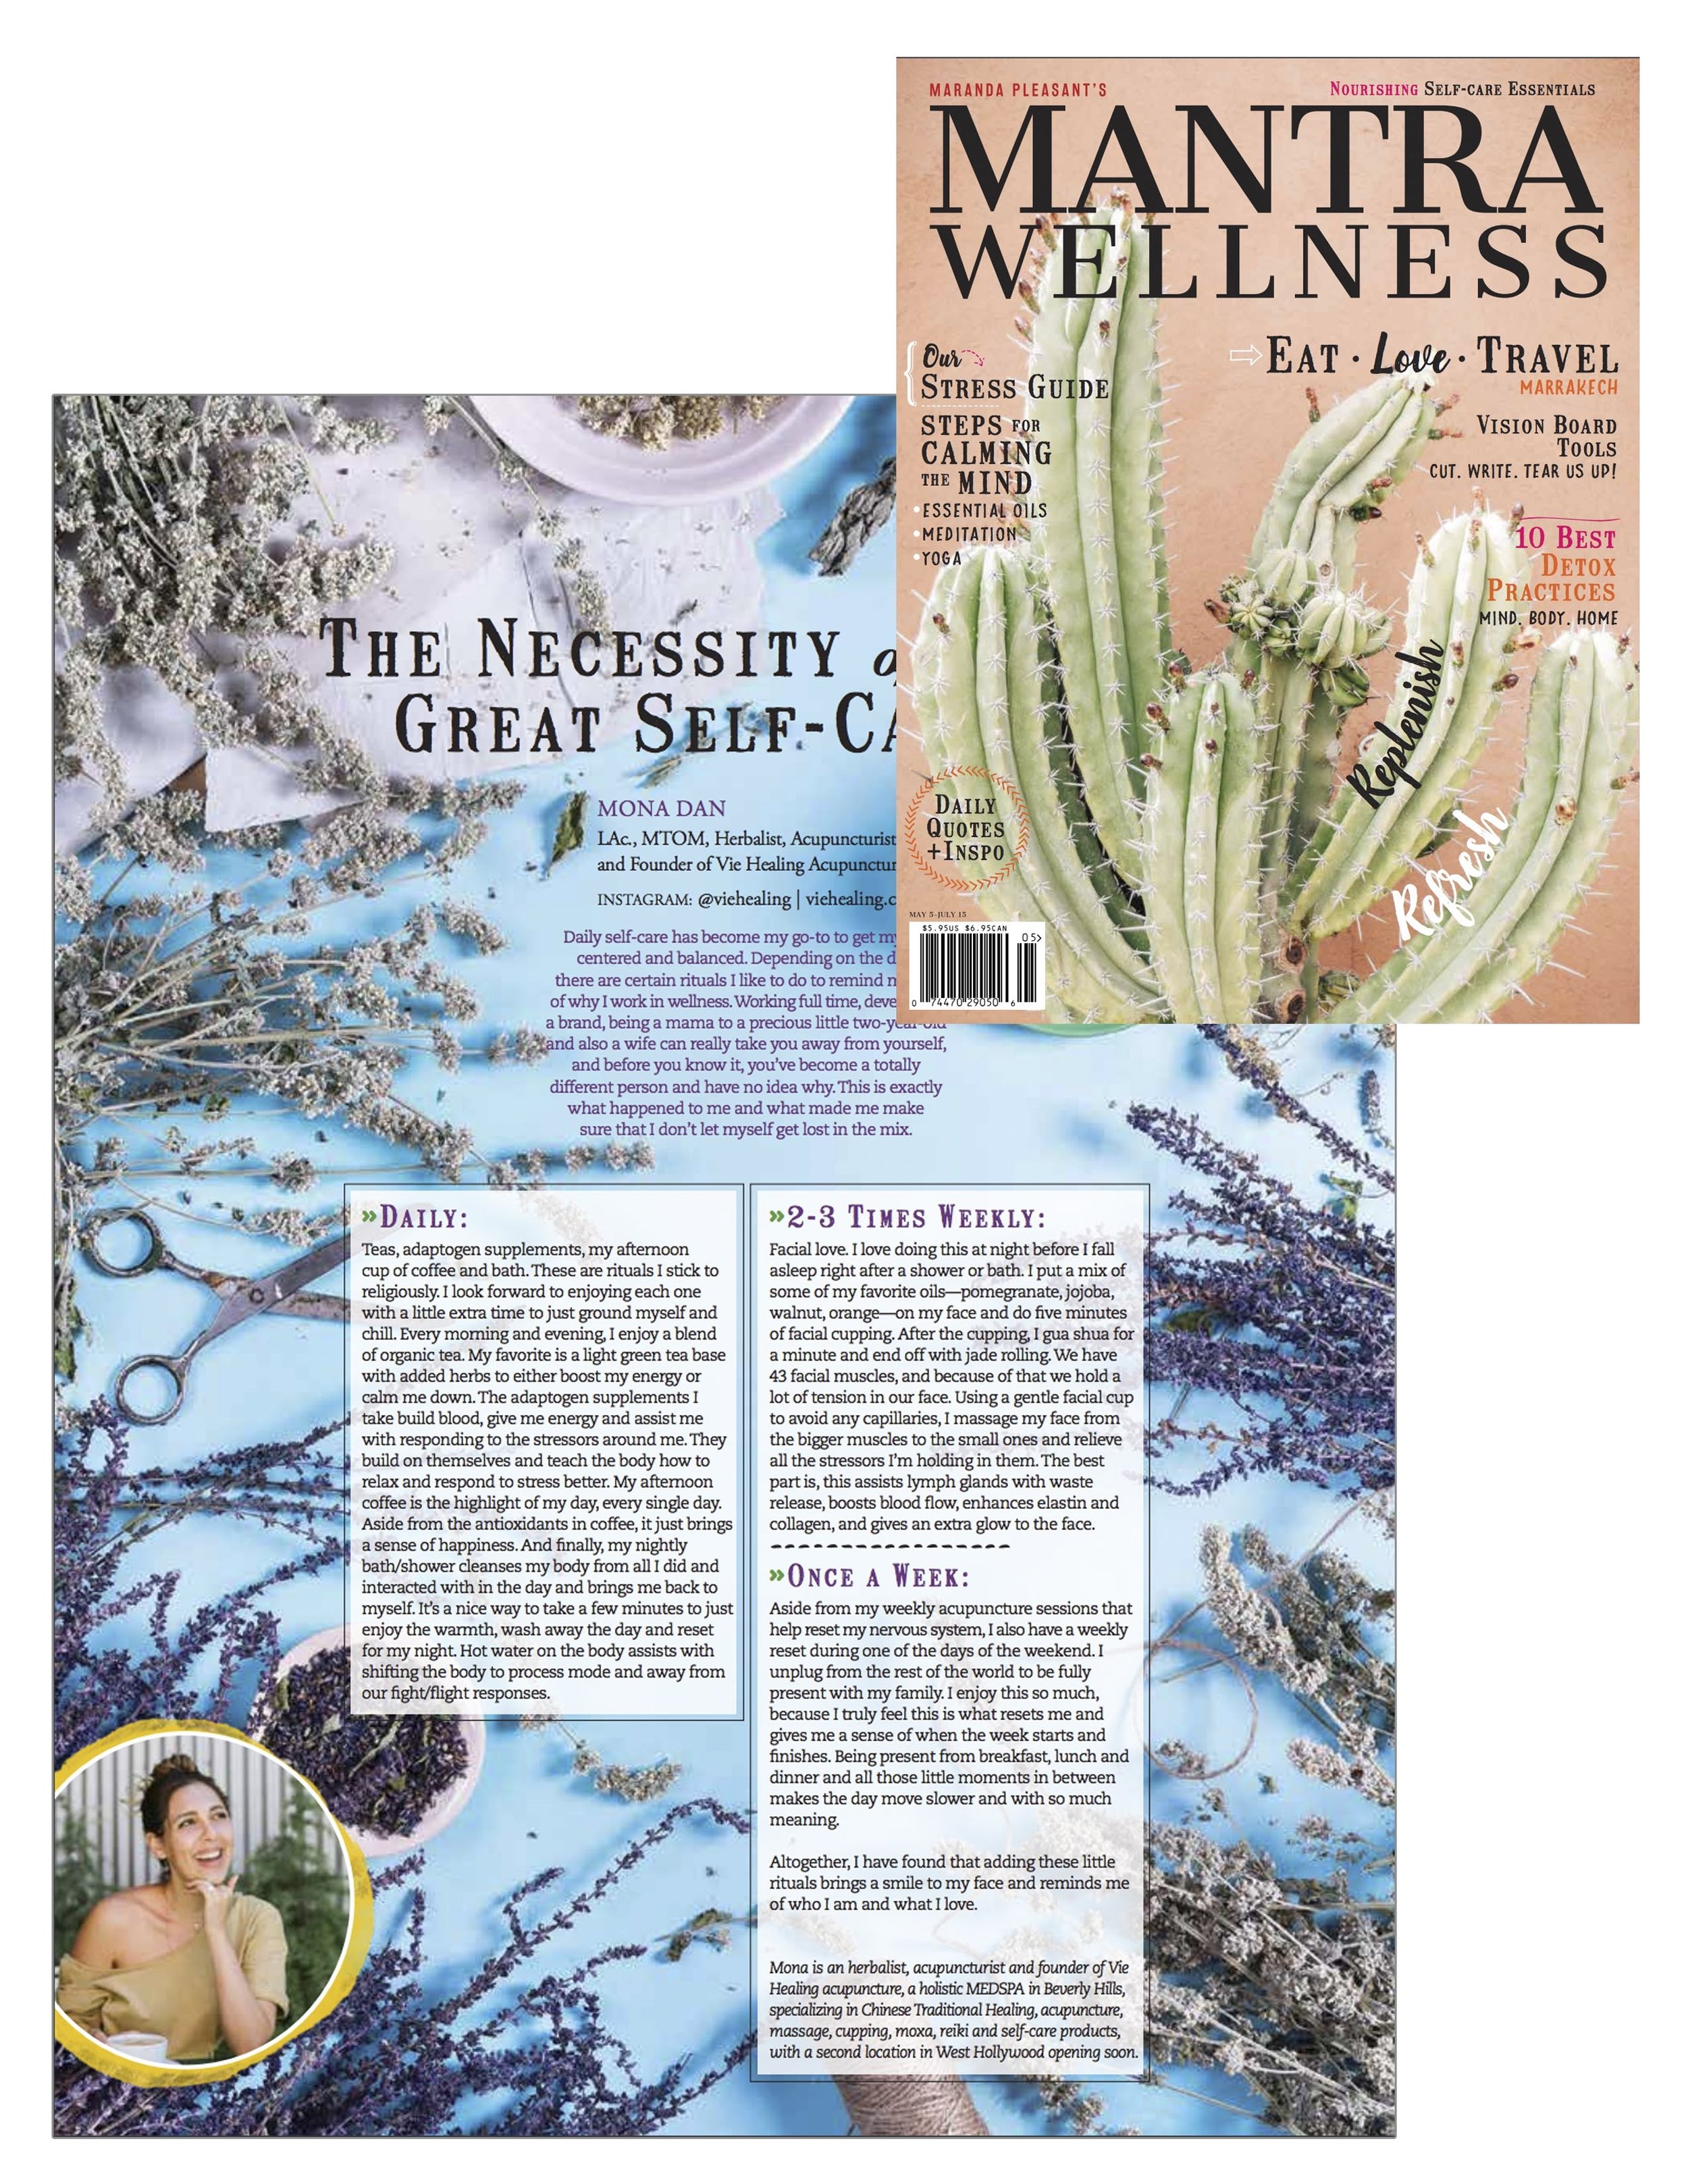 Issue 22 - Mantra Wellness Magazine - Vie Healing.jpg